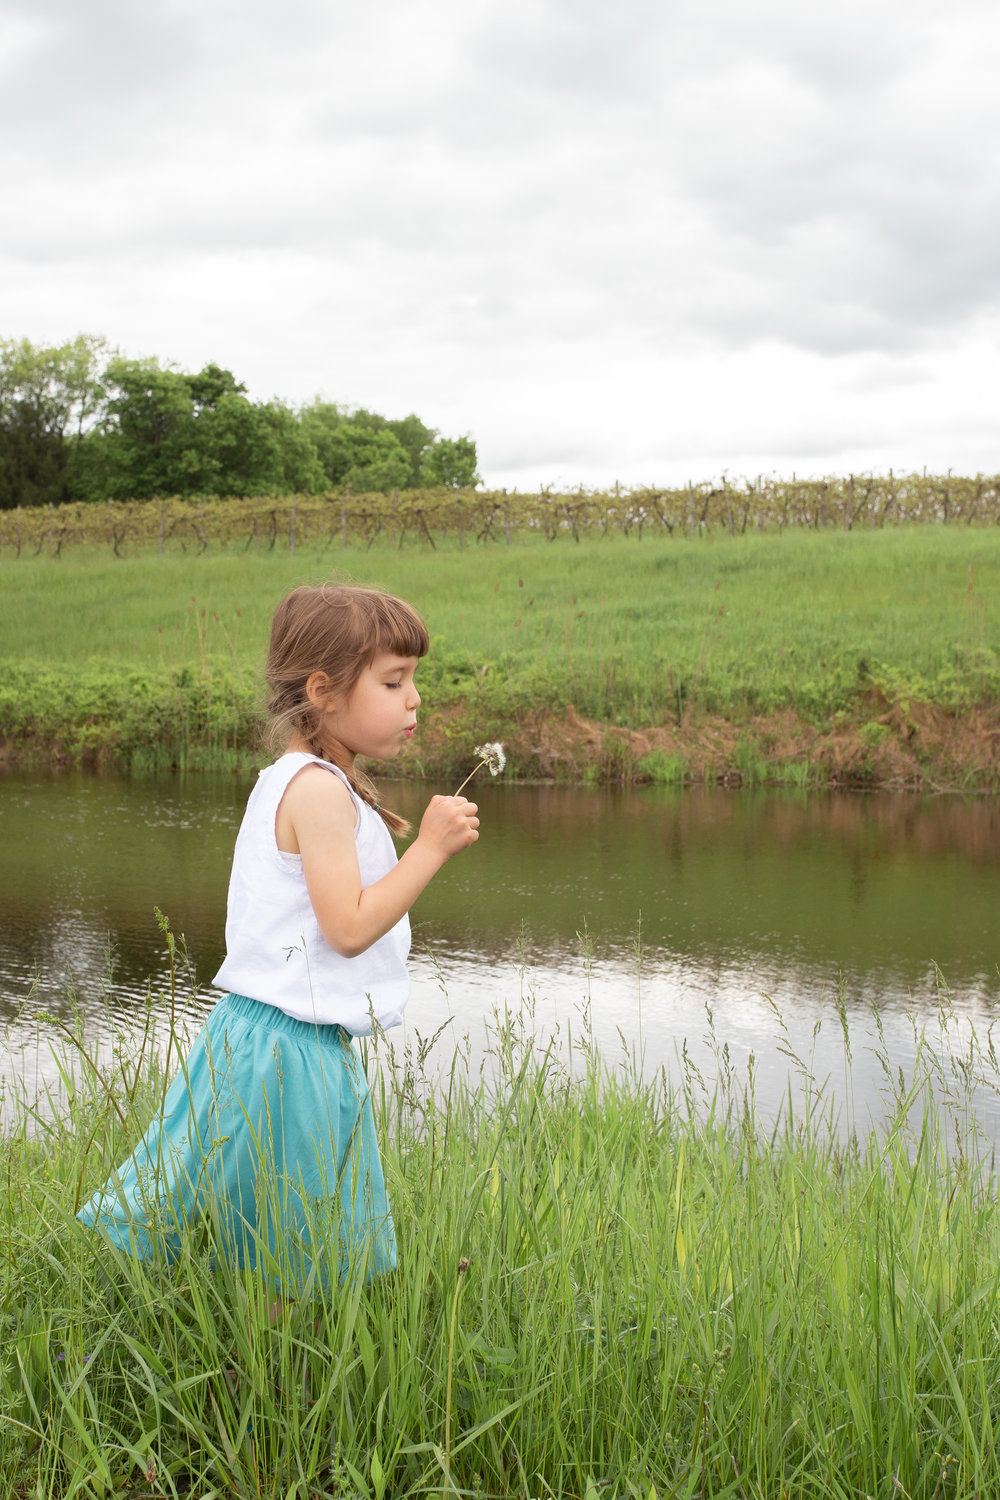 Girl wishing on a dandelion in a field in Germantown, NY.Photograph by Laughing Heart Photography.